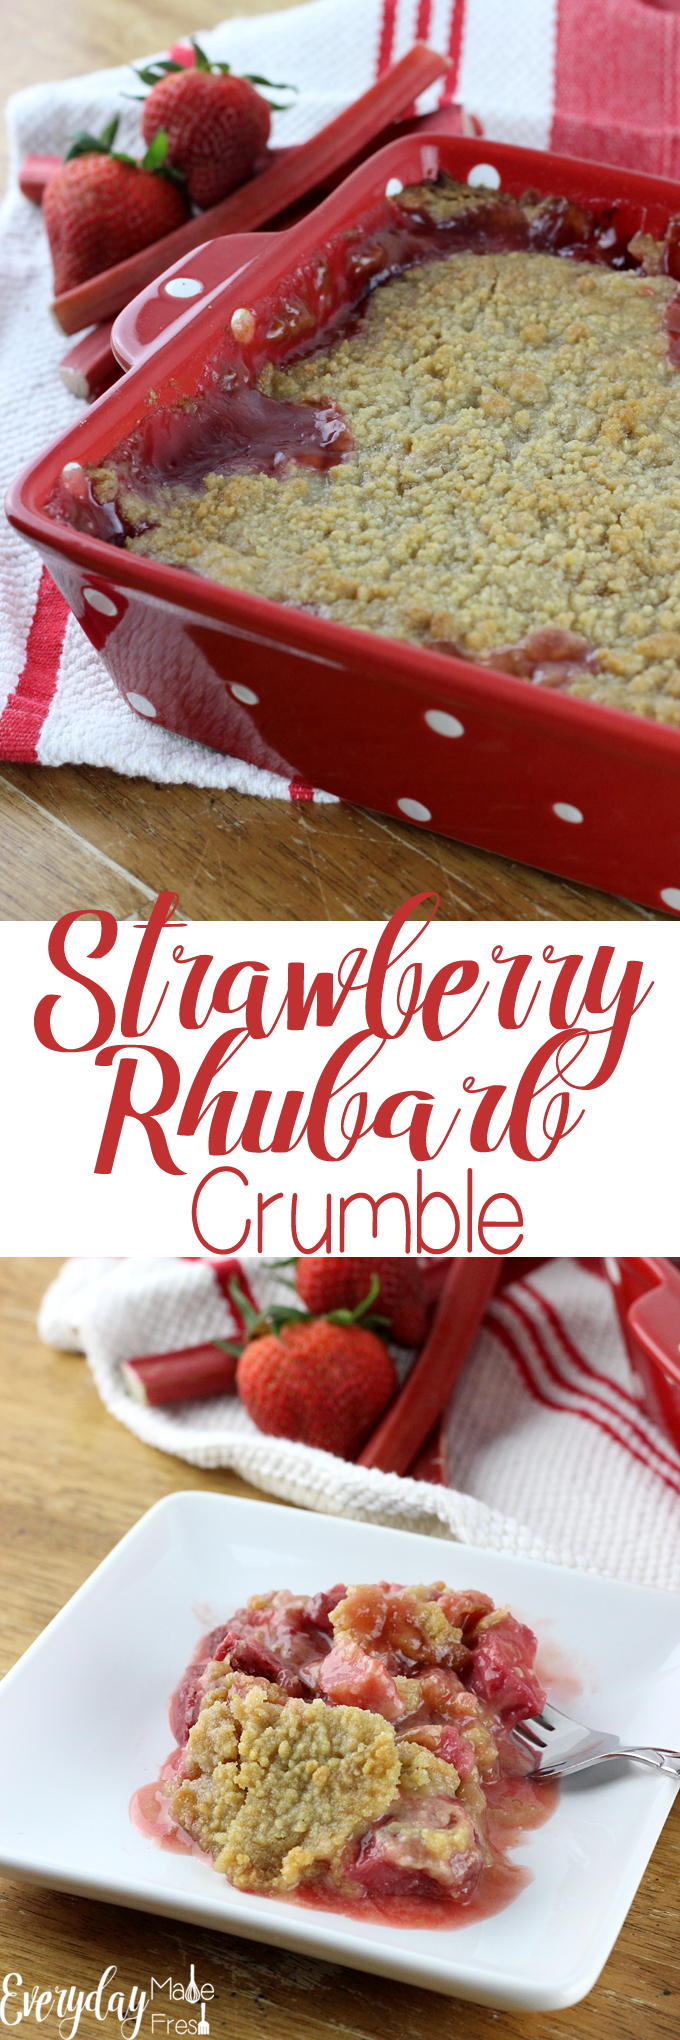 Paired with strawberries and topped with a delicious sugary crumb topping, this Strawberry Rhubarb Crumble will have you a fan in no time! Unless your already a fan and then you'll just be happy to have another scrumptious rhubarb recipe in your arsenal. | EverydayMadeFresh.com